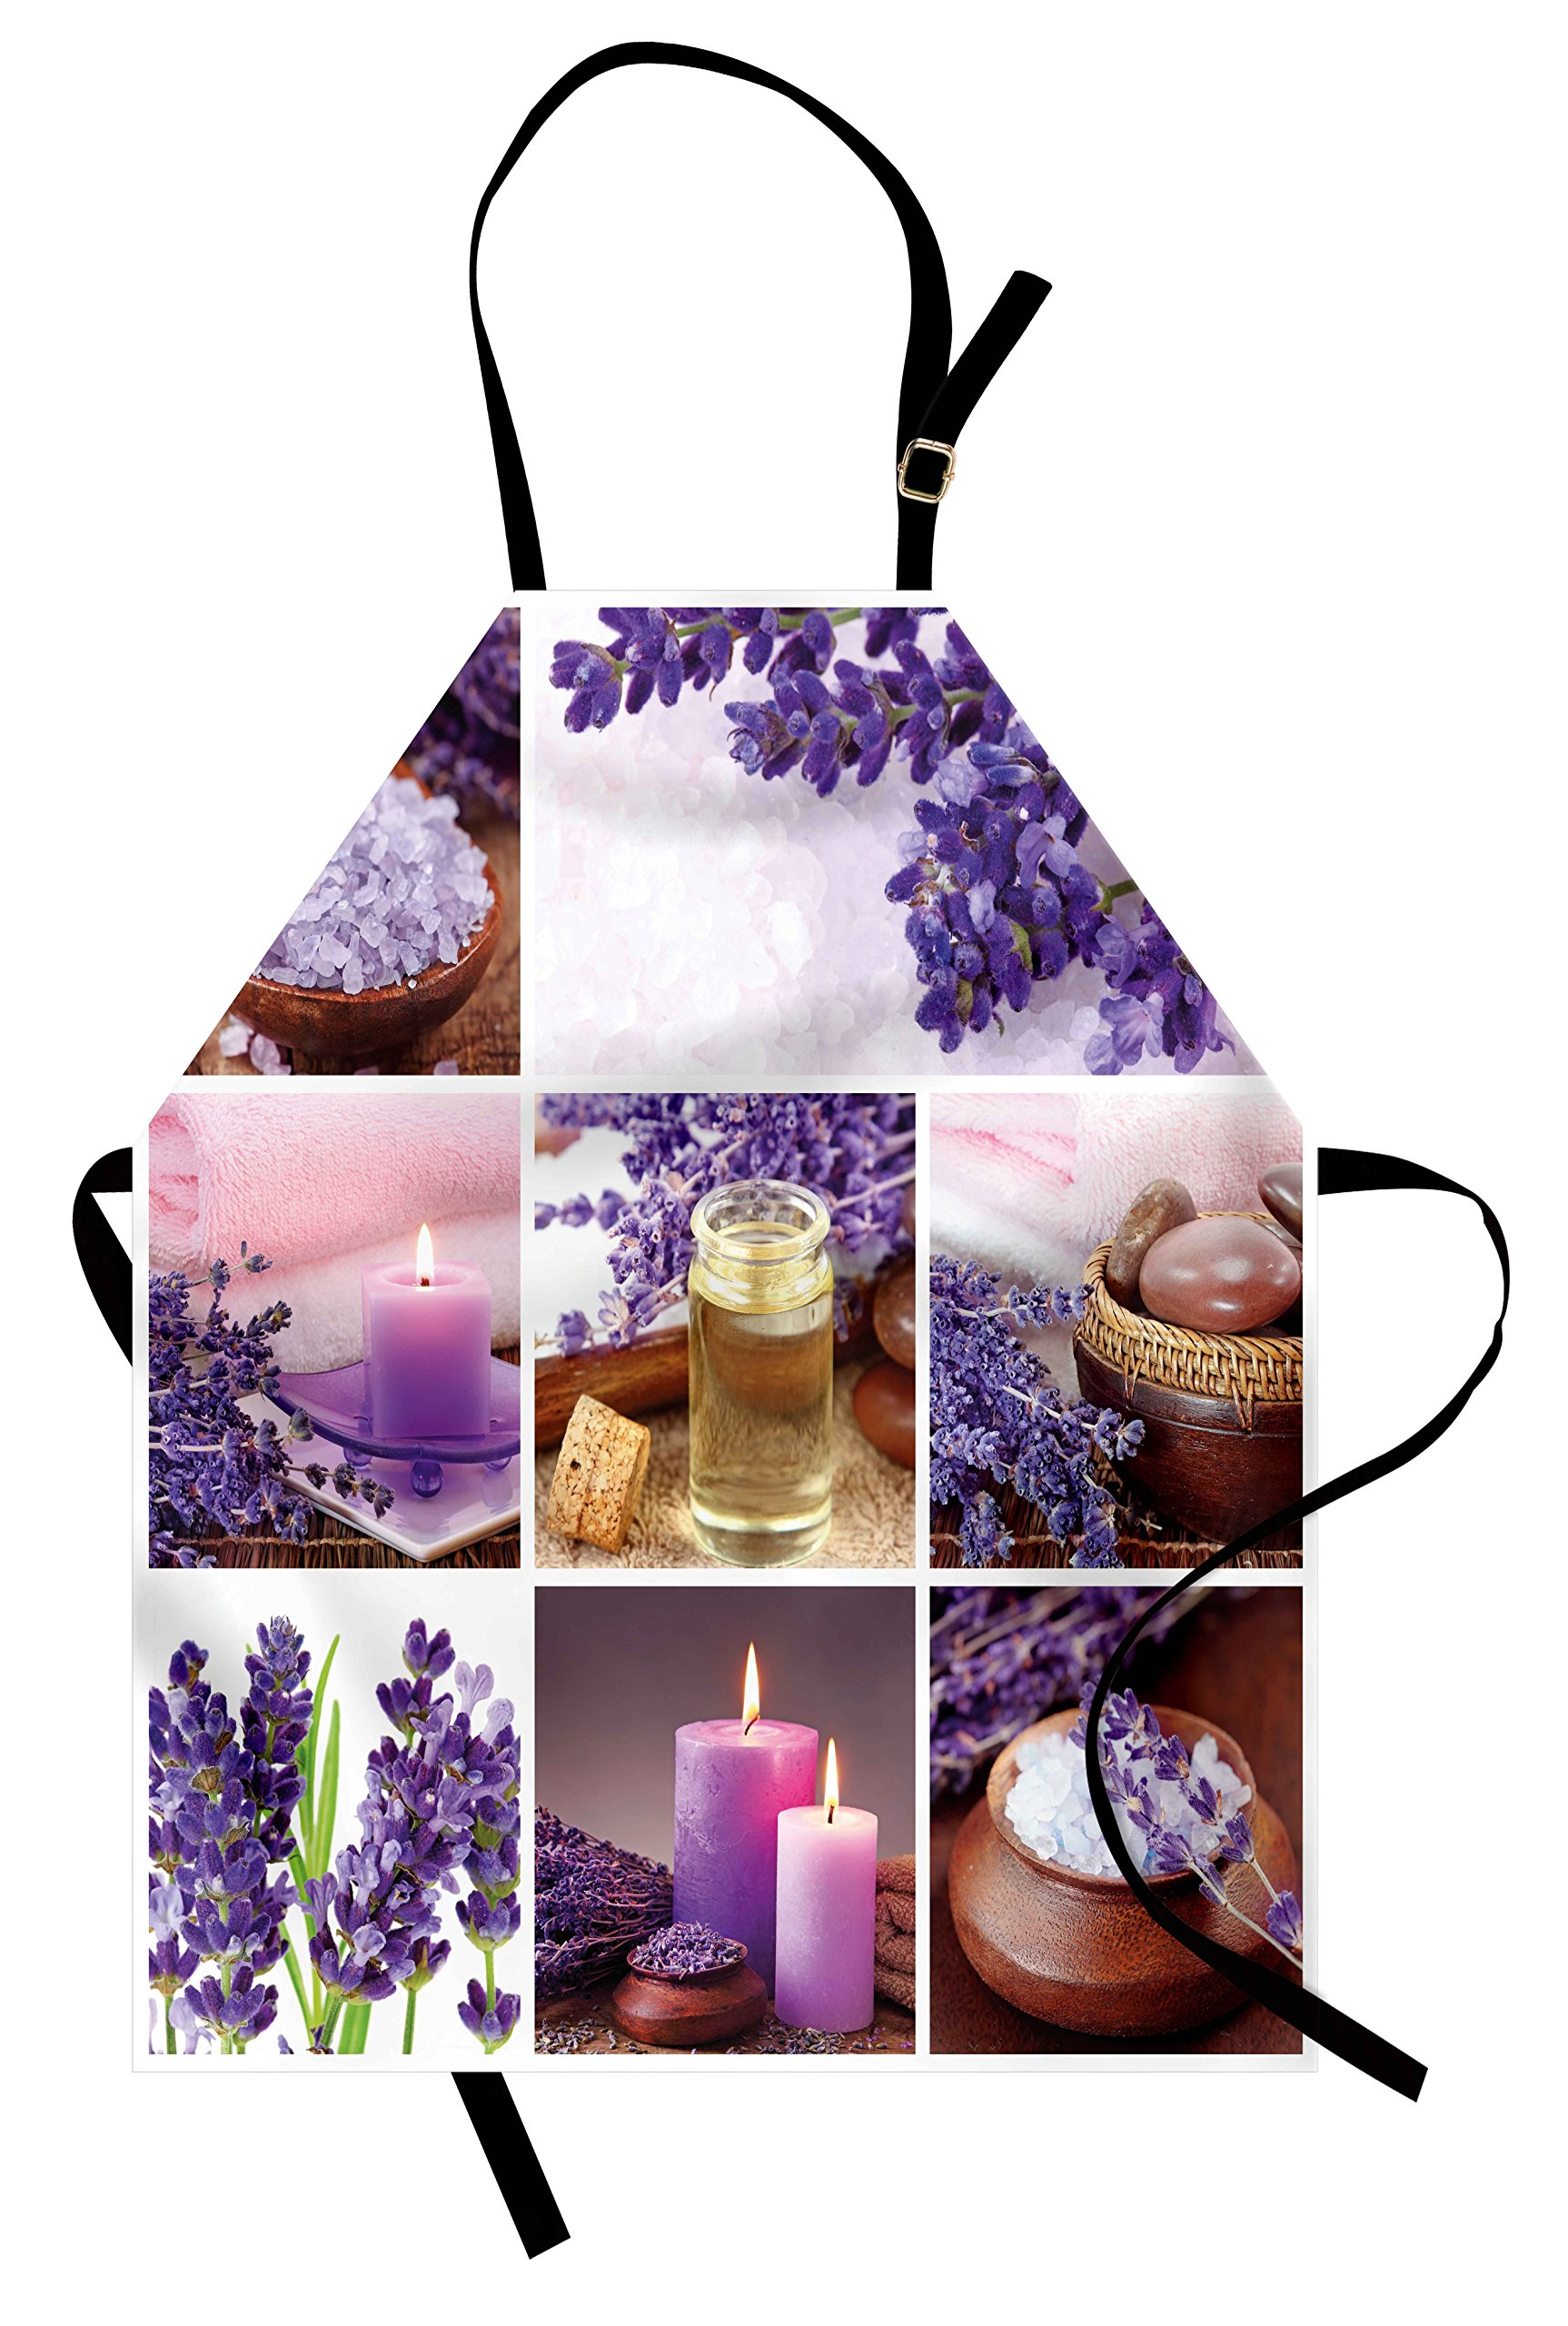 Lunarable Spa Apron, Lavender Garden Alike Themed Relaxing Candles Stones Herbal Salt Elements Image, Unisex Kitchen Bib Apron with Adjustable Neck for Cooking Baking Gardening, Purple and White